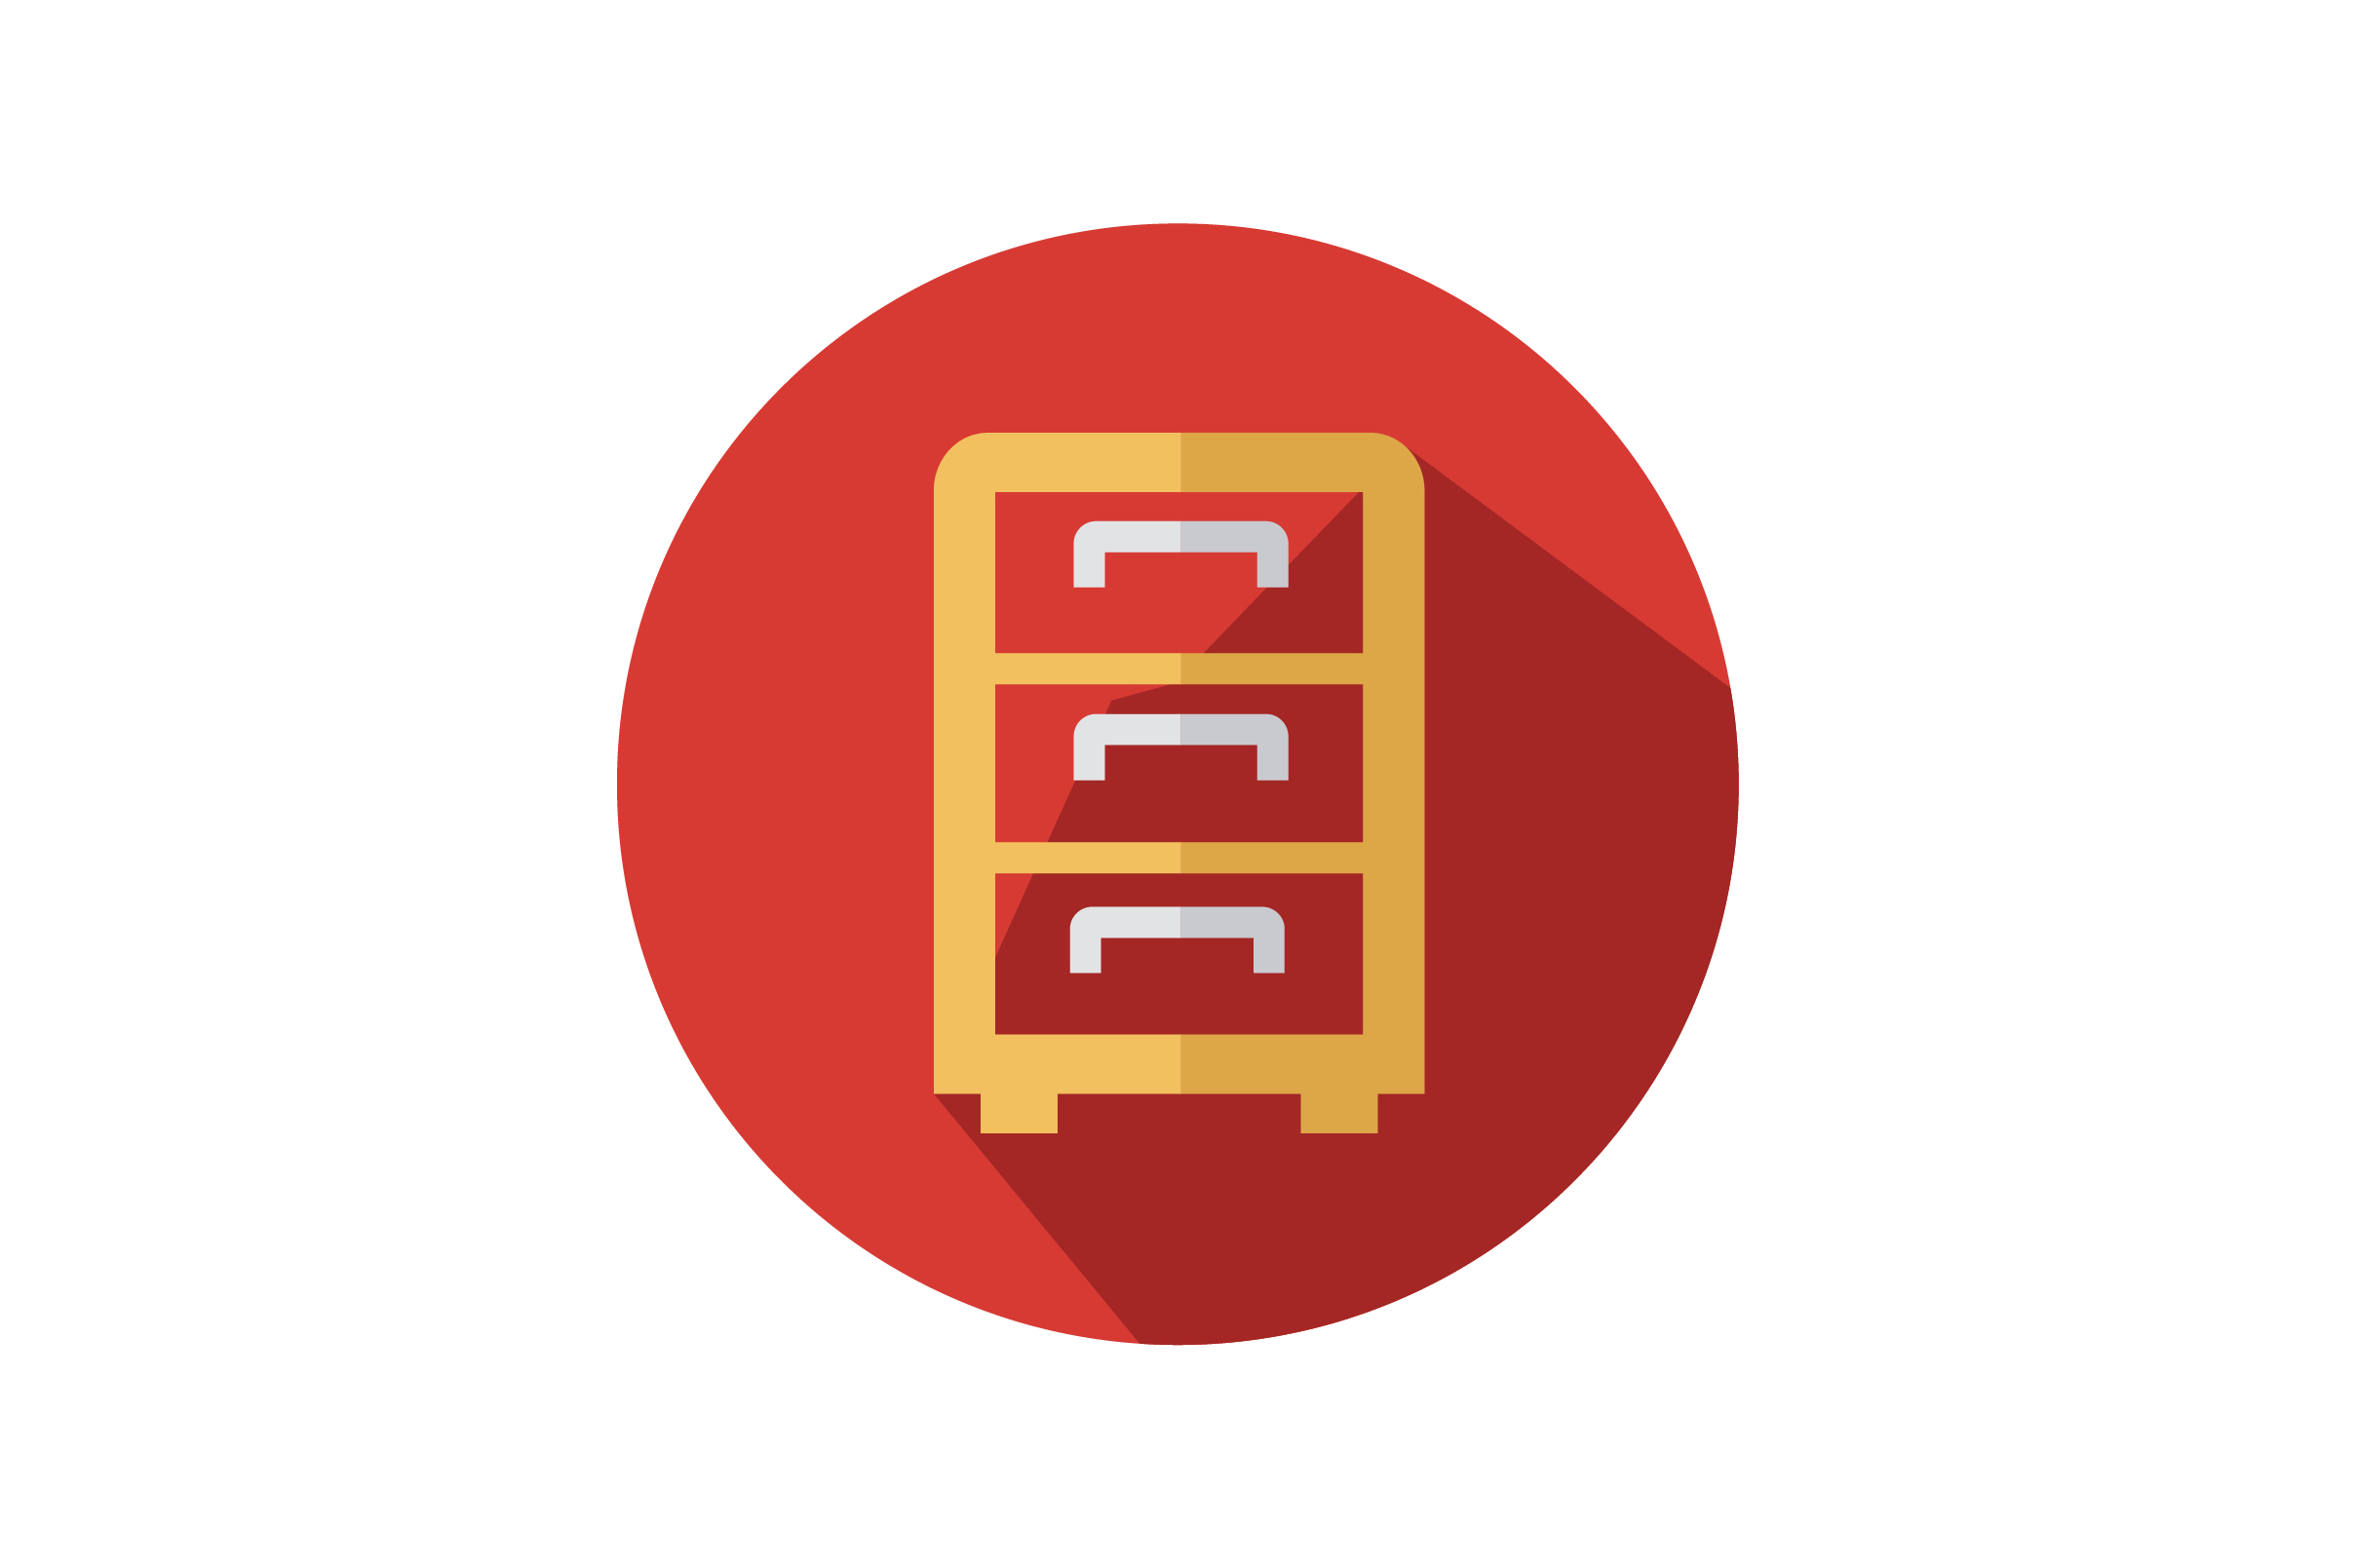 Drawers Flat Vector Icon Graphic By Riduwan Molla Creative Fabrica